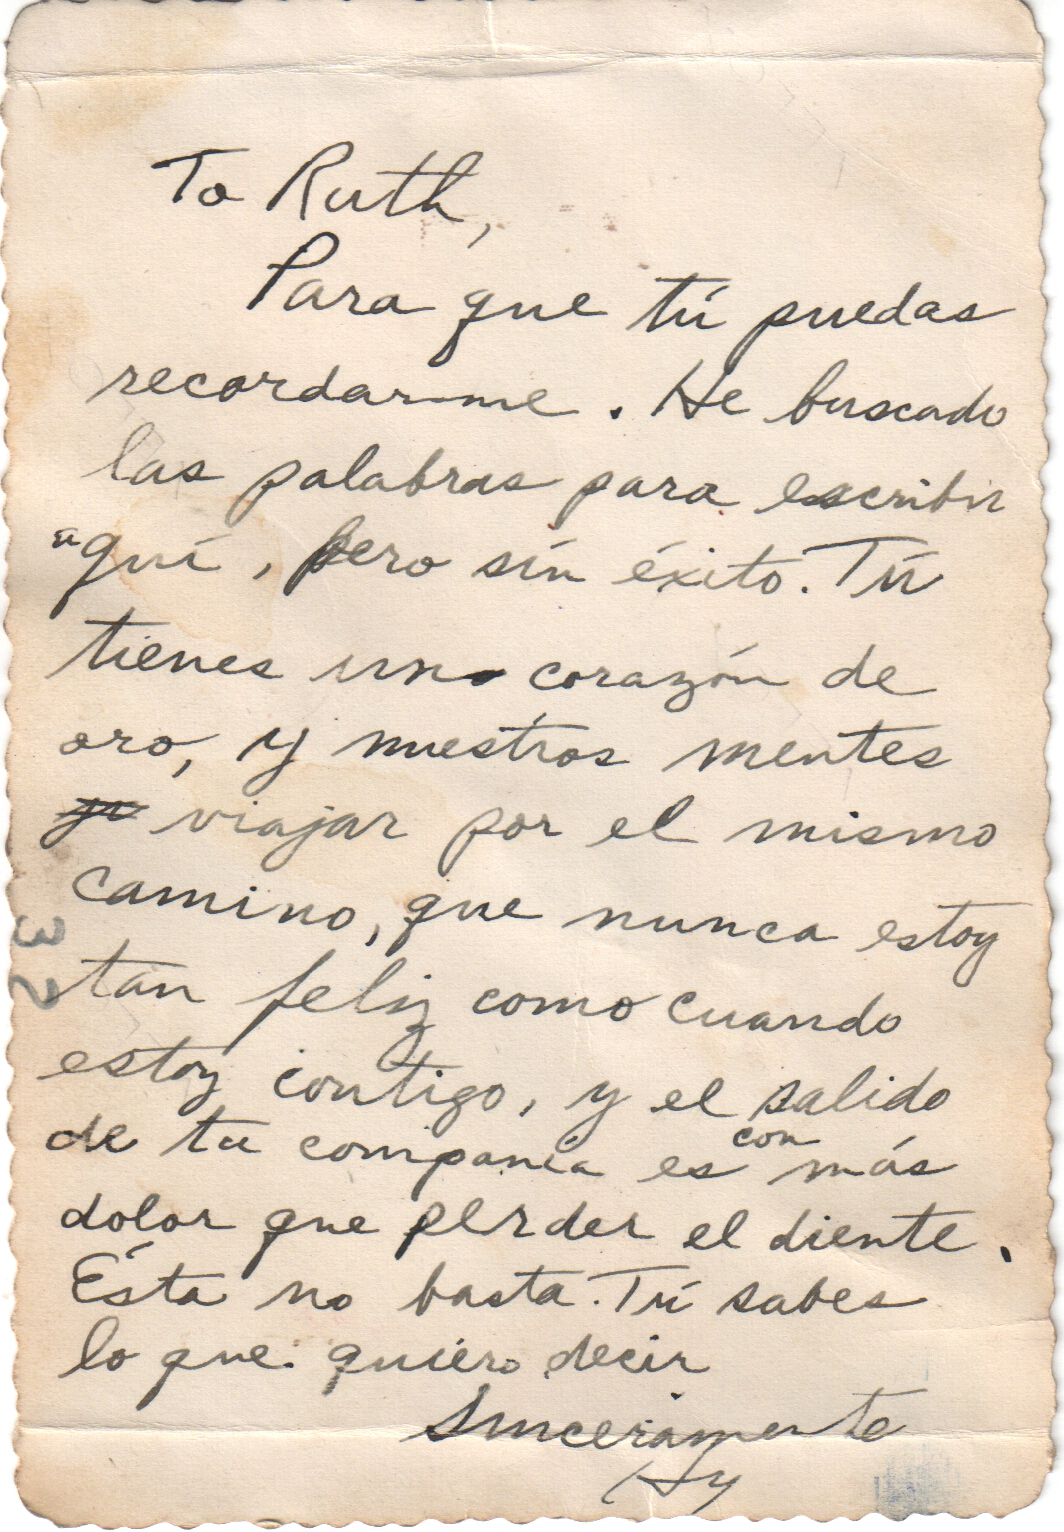 Dad's Spanish Love Letter